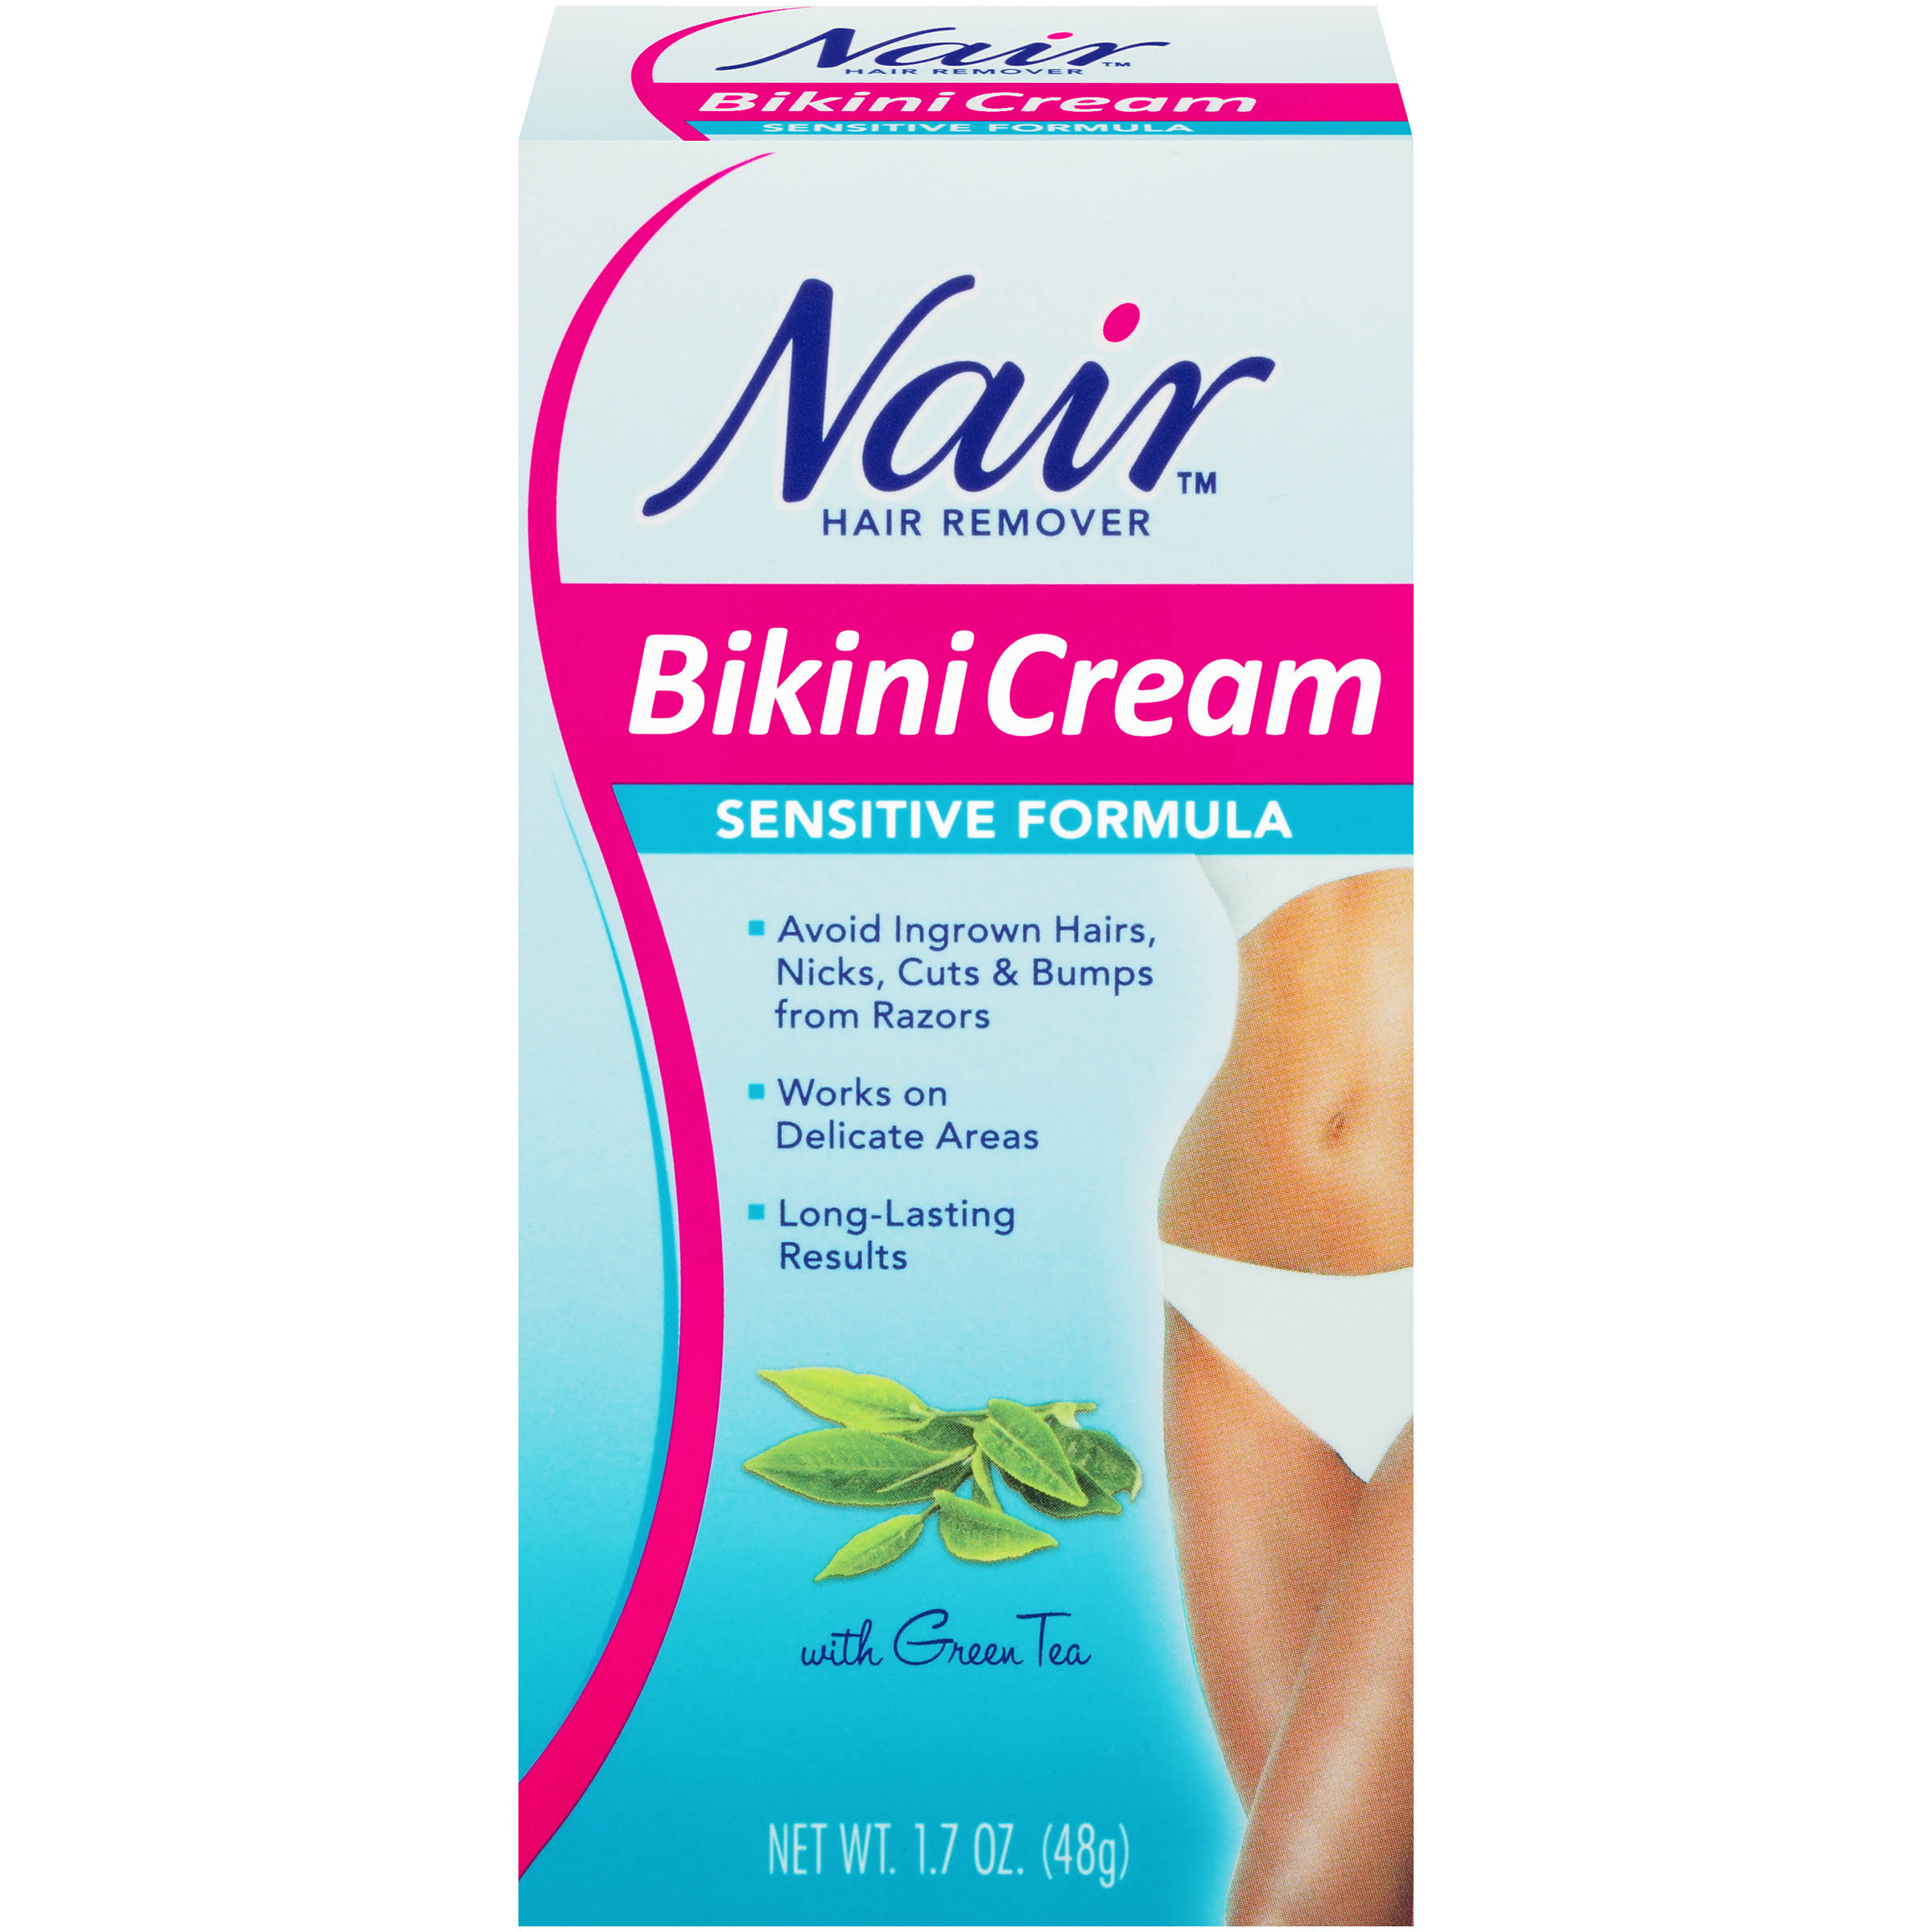 Nair Bikini Cream Hair Remover - Sensitive Skin Formula, 1.7oz